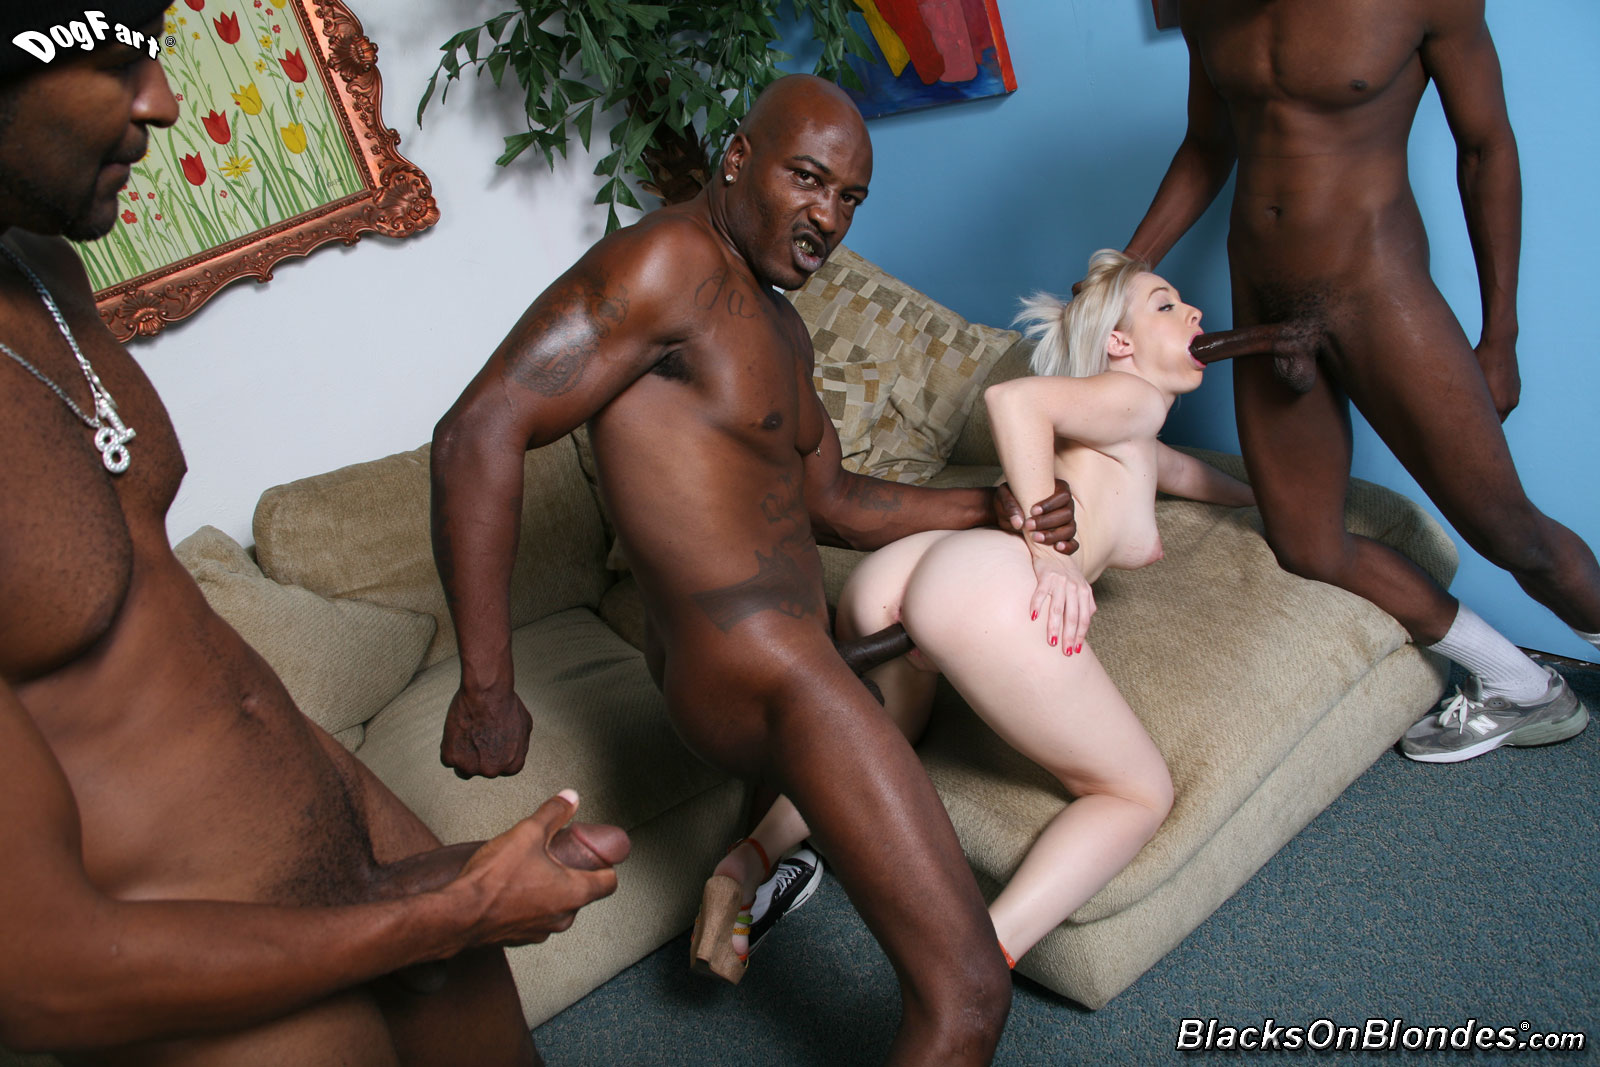 Alana luv fucks a black cock for the first time 7